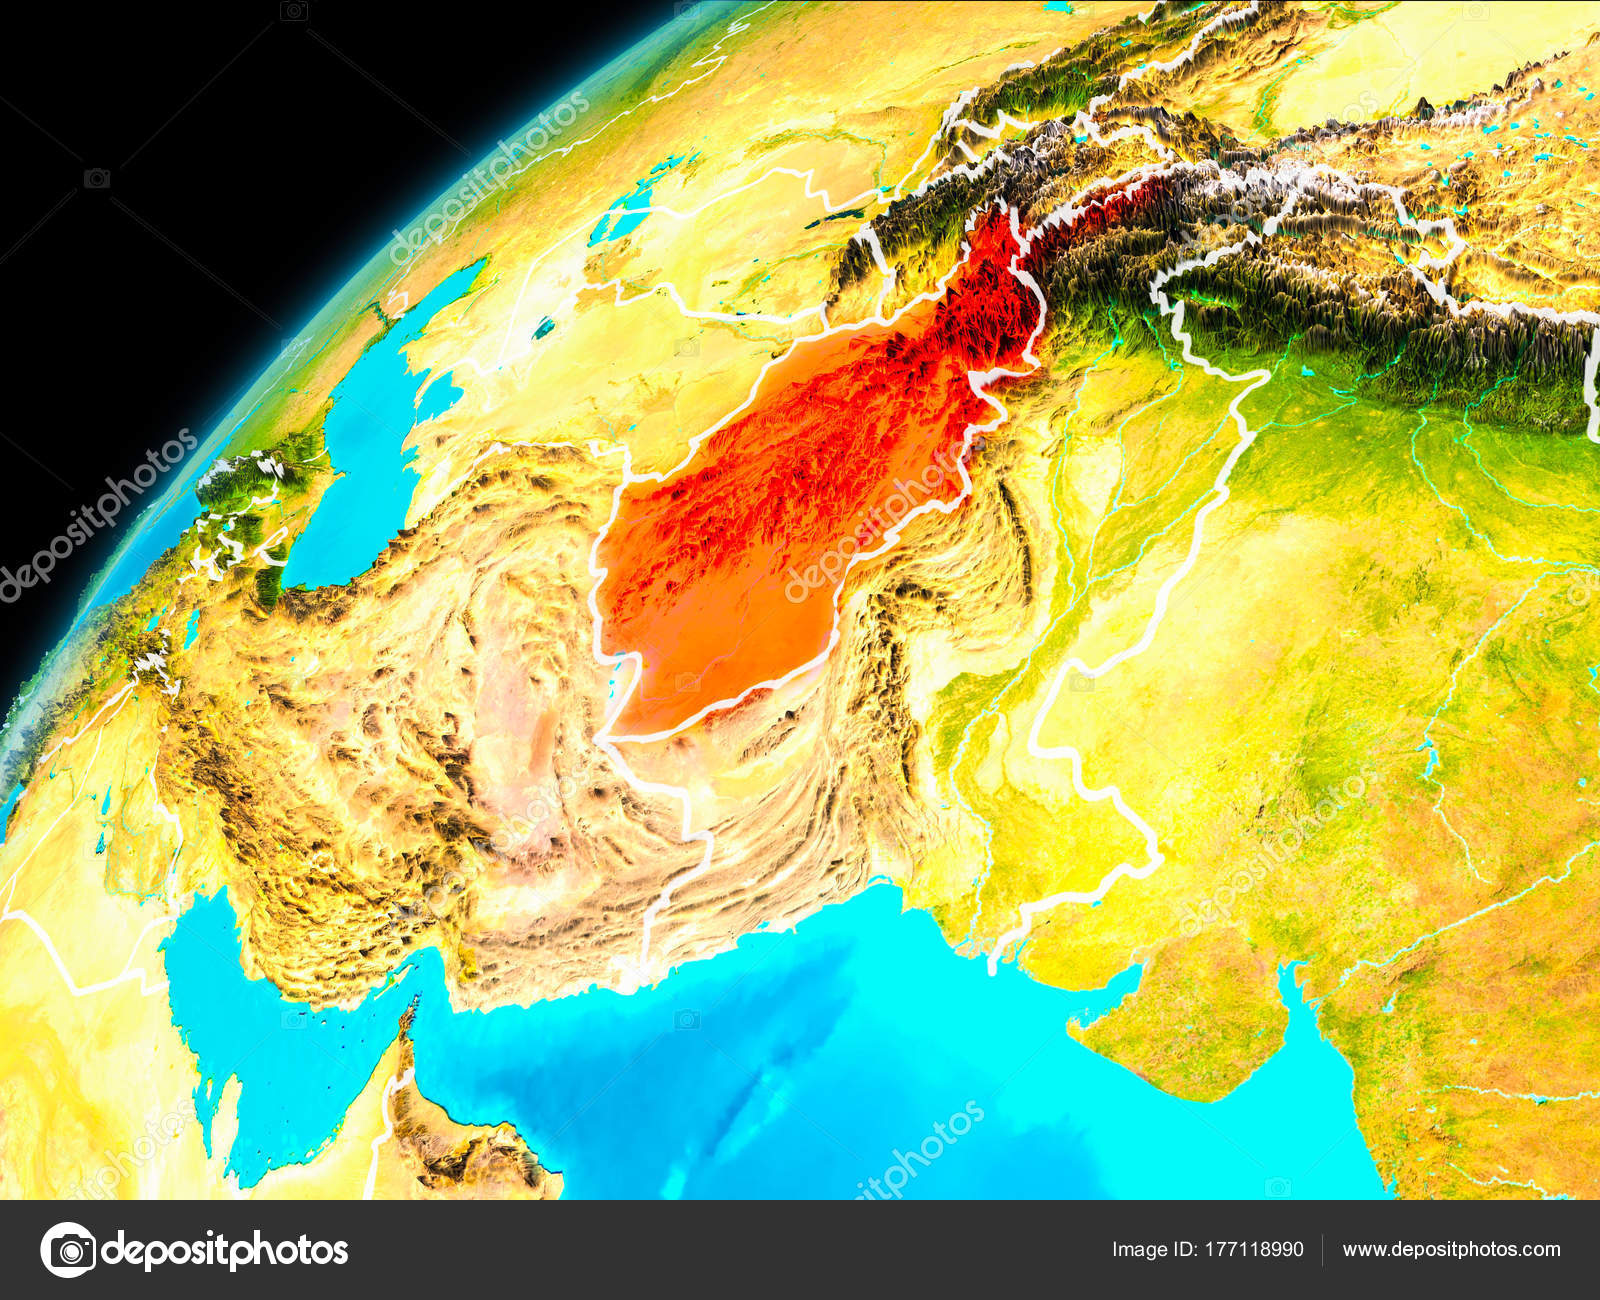 Afghanistan from space stock photo tomiger 177118990 orbit view of afghanistan highlighted in red with visible borderlines on planet earth 3d illustration elements of this image furnished by nasa gumiabroncs Gallery